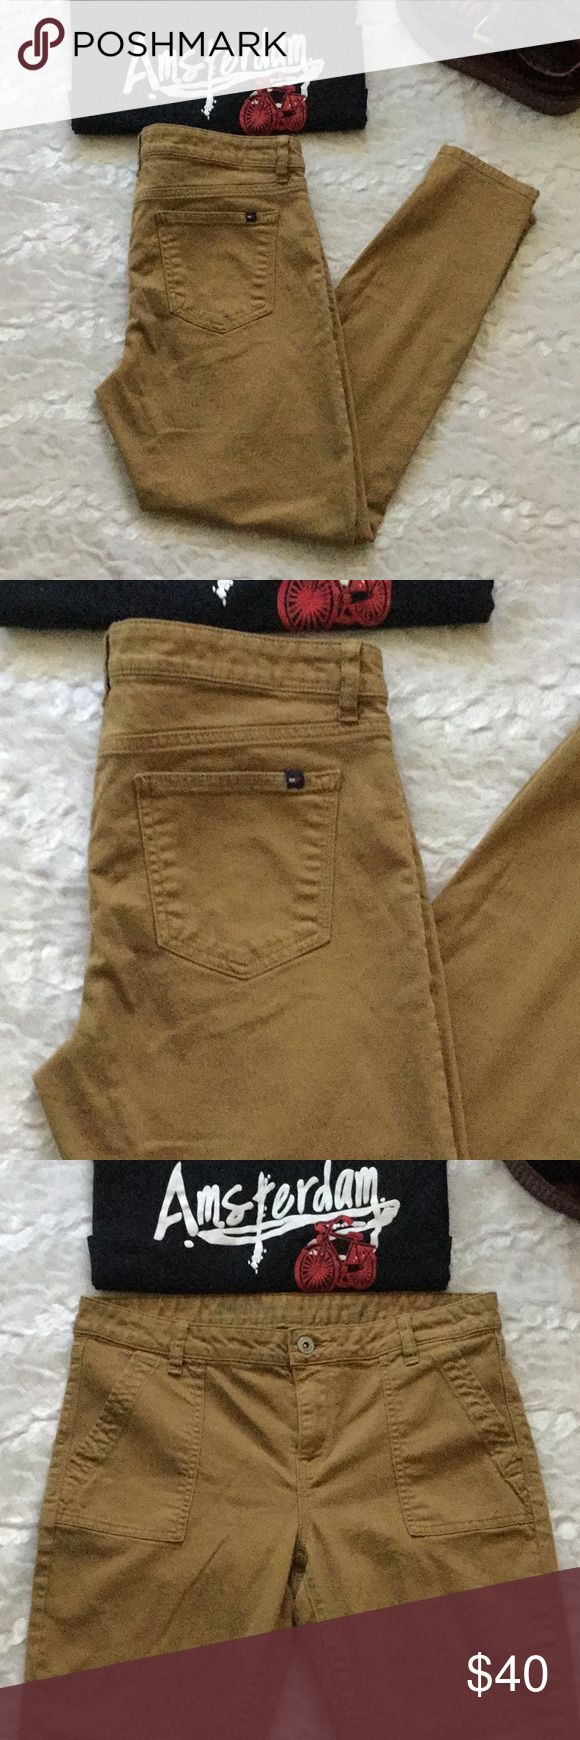 Mustard Tommy Hilfiger Zip Ankle Leg Jeans Tommy Hilfiger Ankle legs. Size 8. In excellent condition. Very cute will heels and army jacket Tommy Hilfiger Pants Skinny